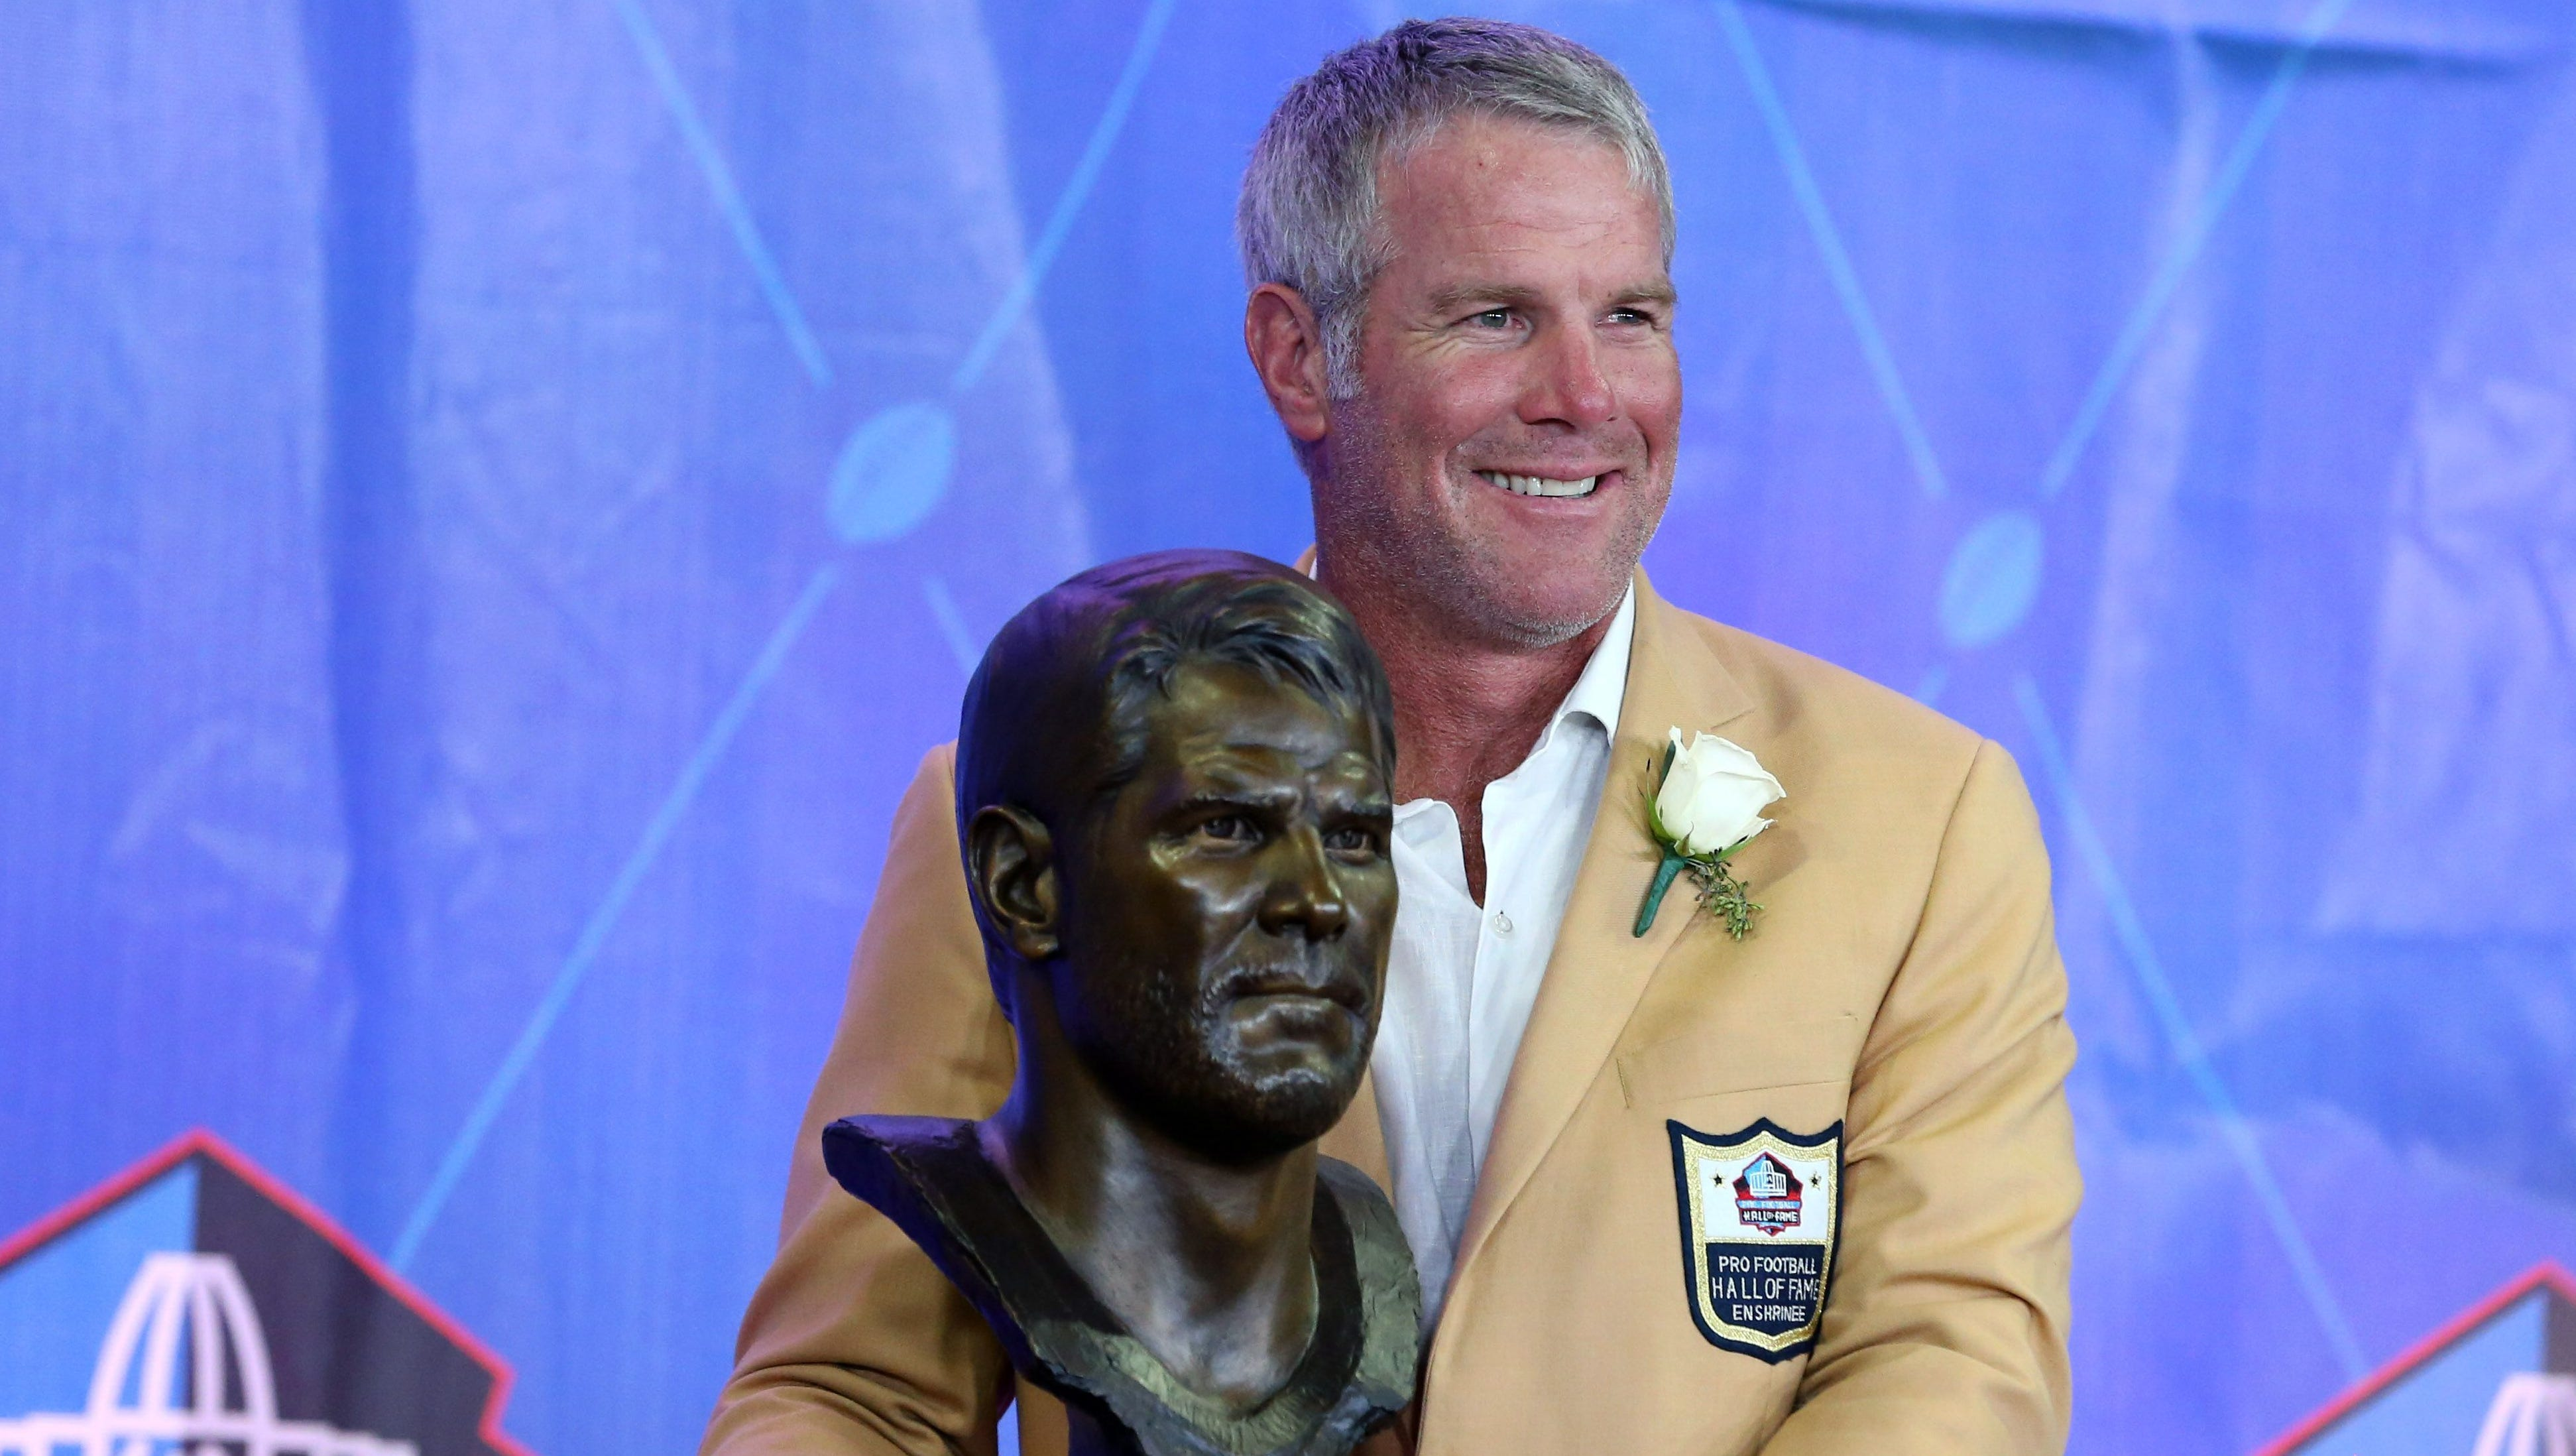 brett favre has pondered return to nfl as coach or general